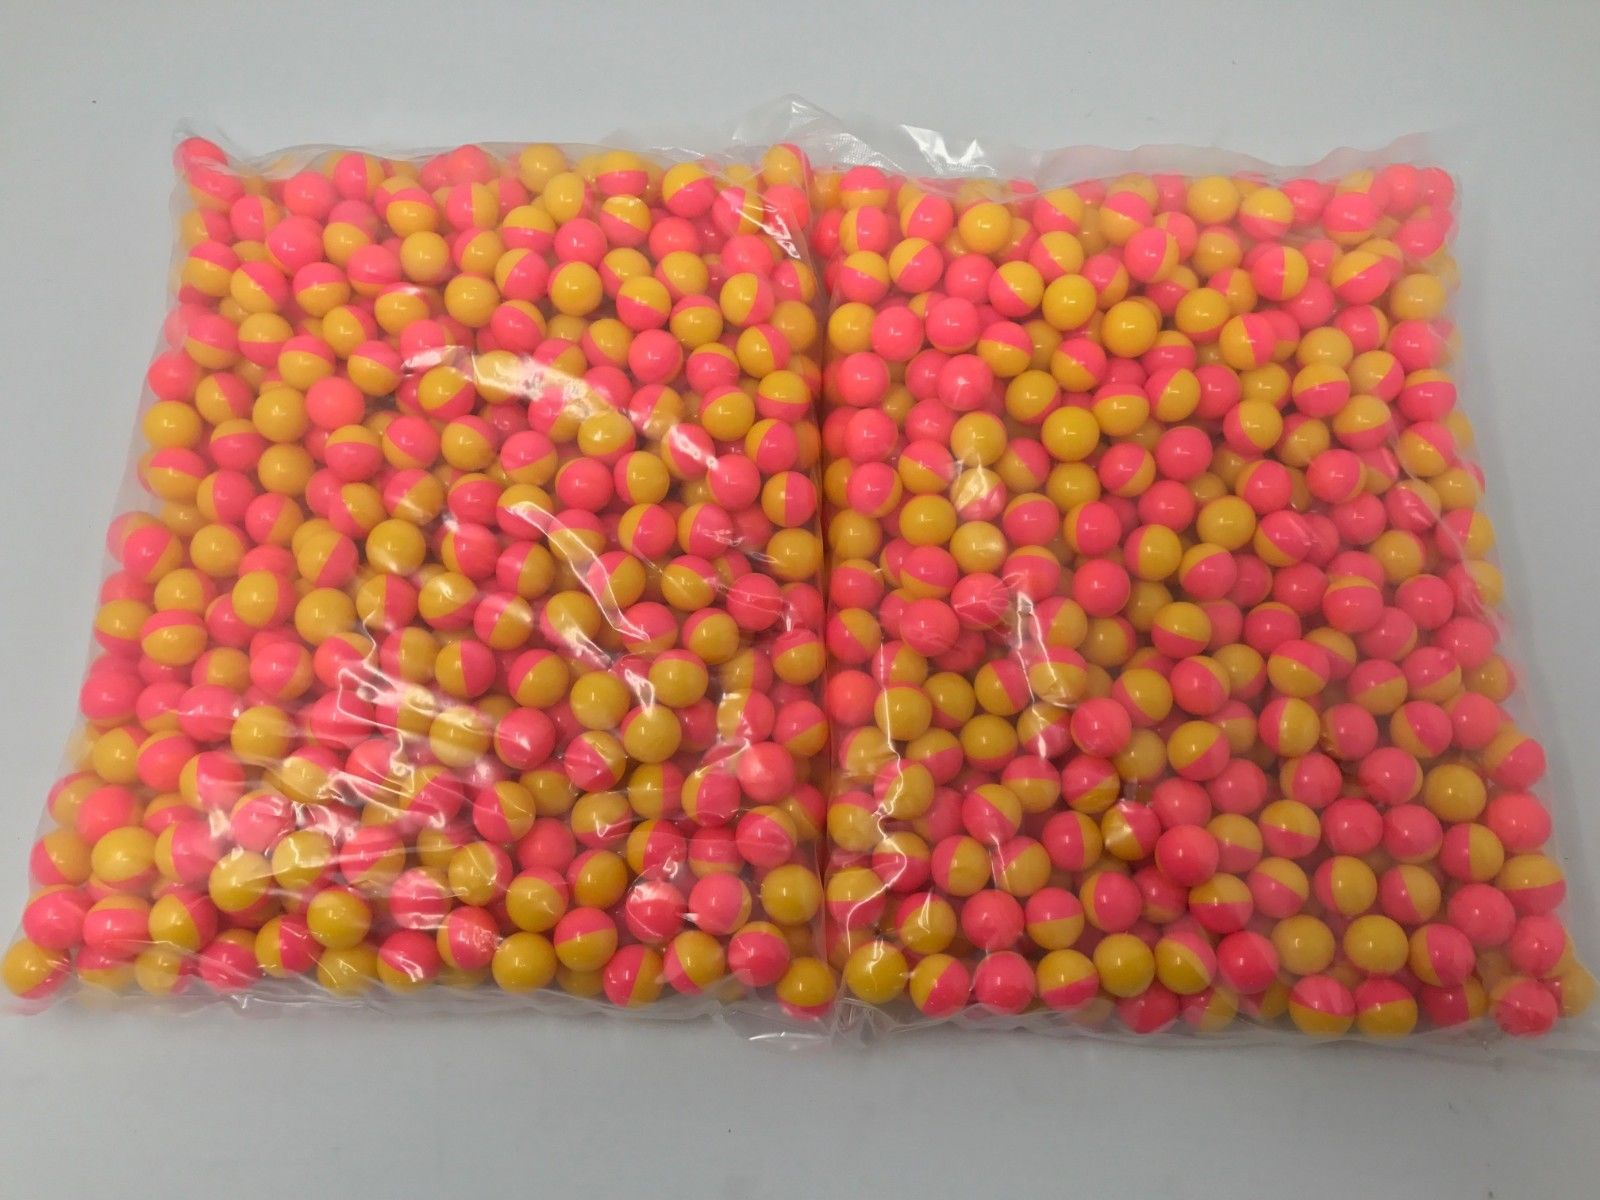 Pink Yellow .68 Caliber Paintballs Yellow Paint Filled New In Bag 1000   Order by